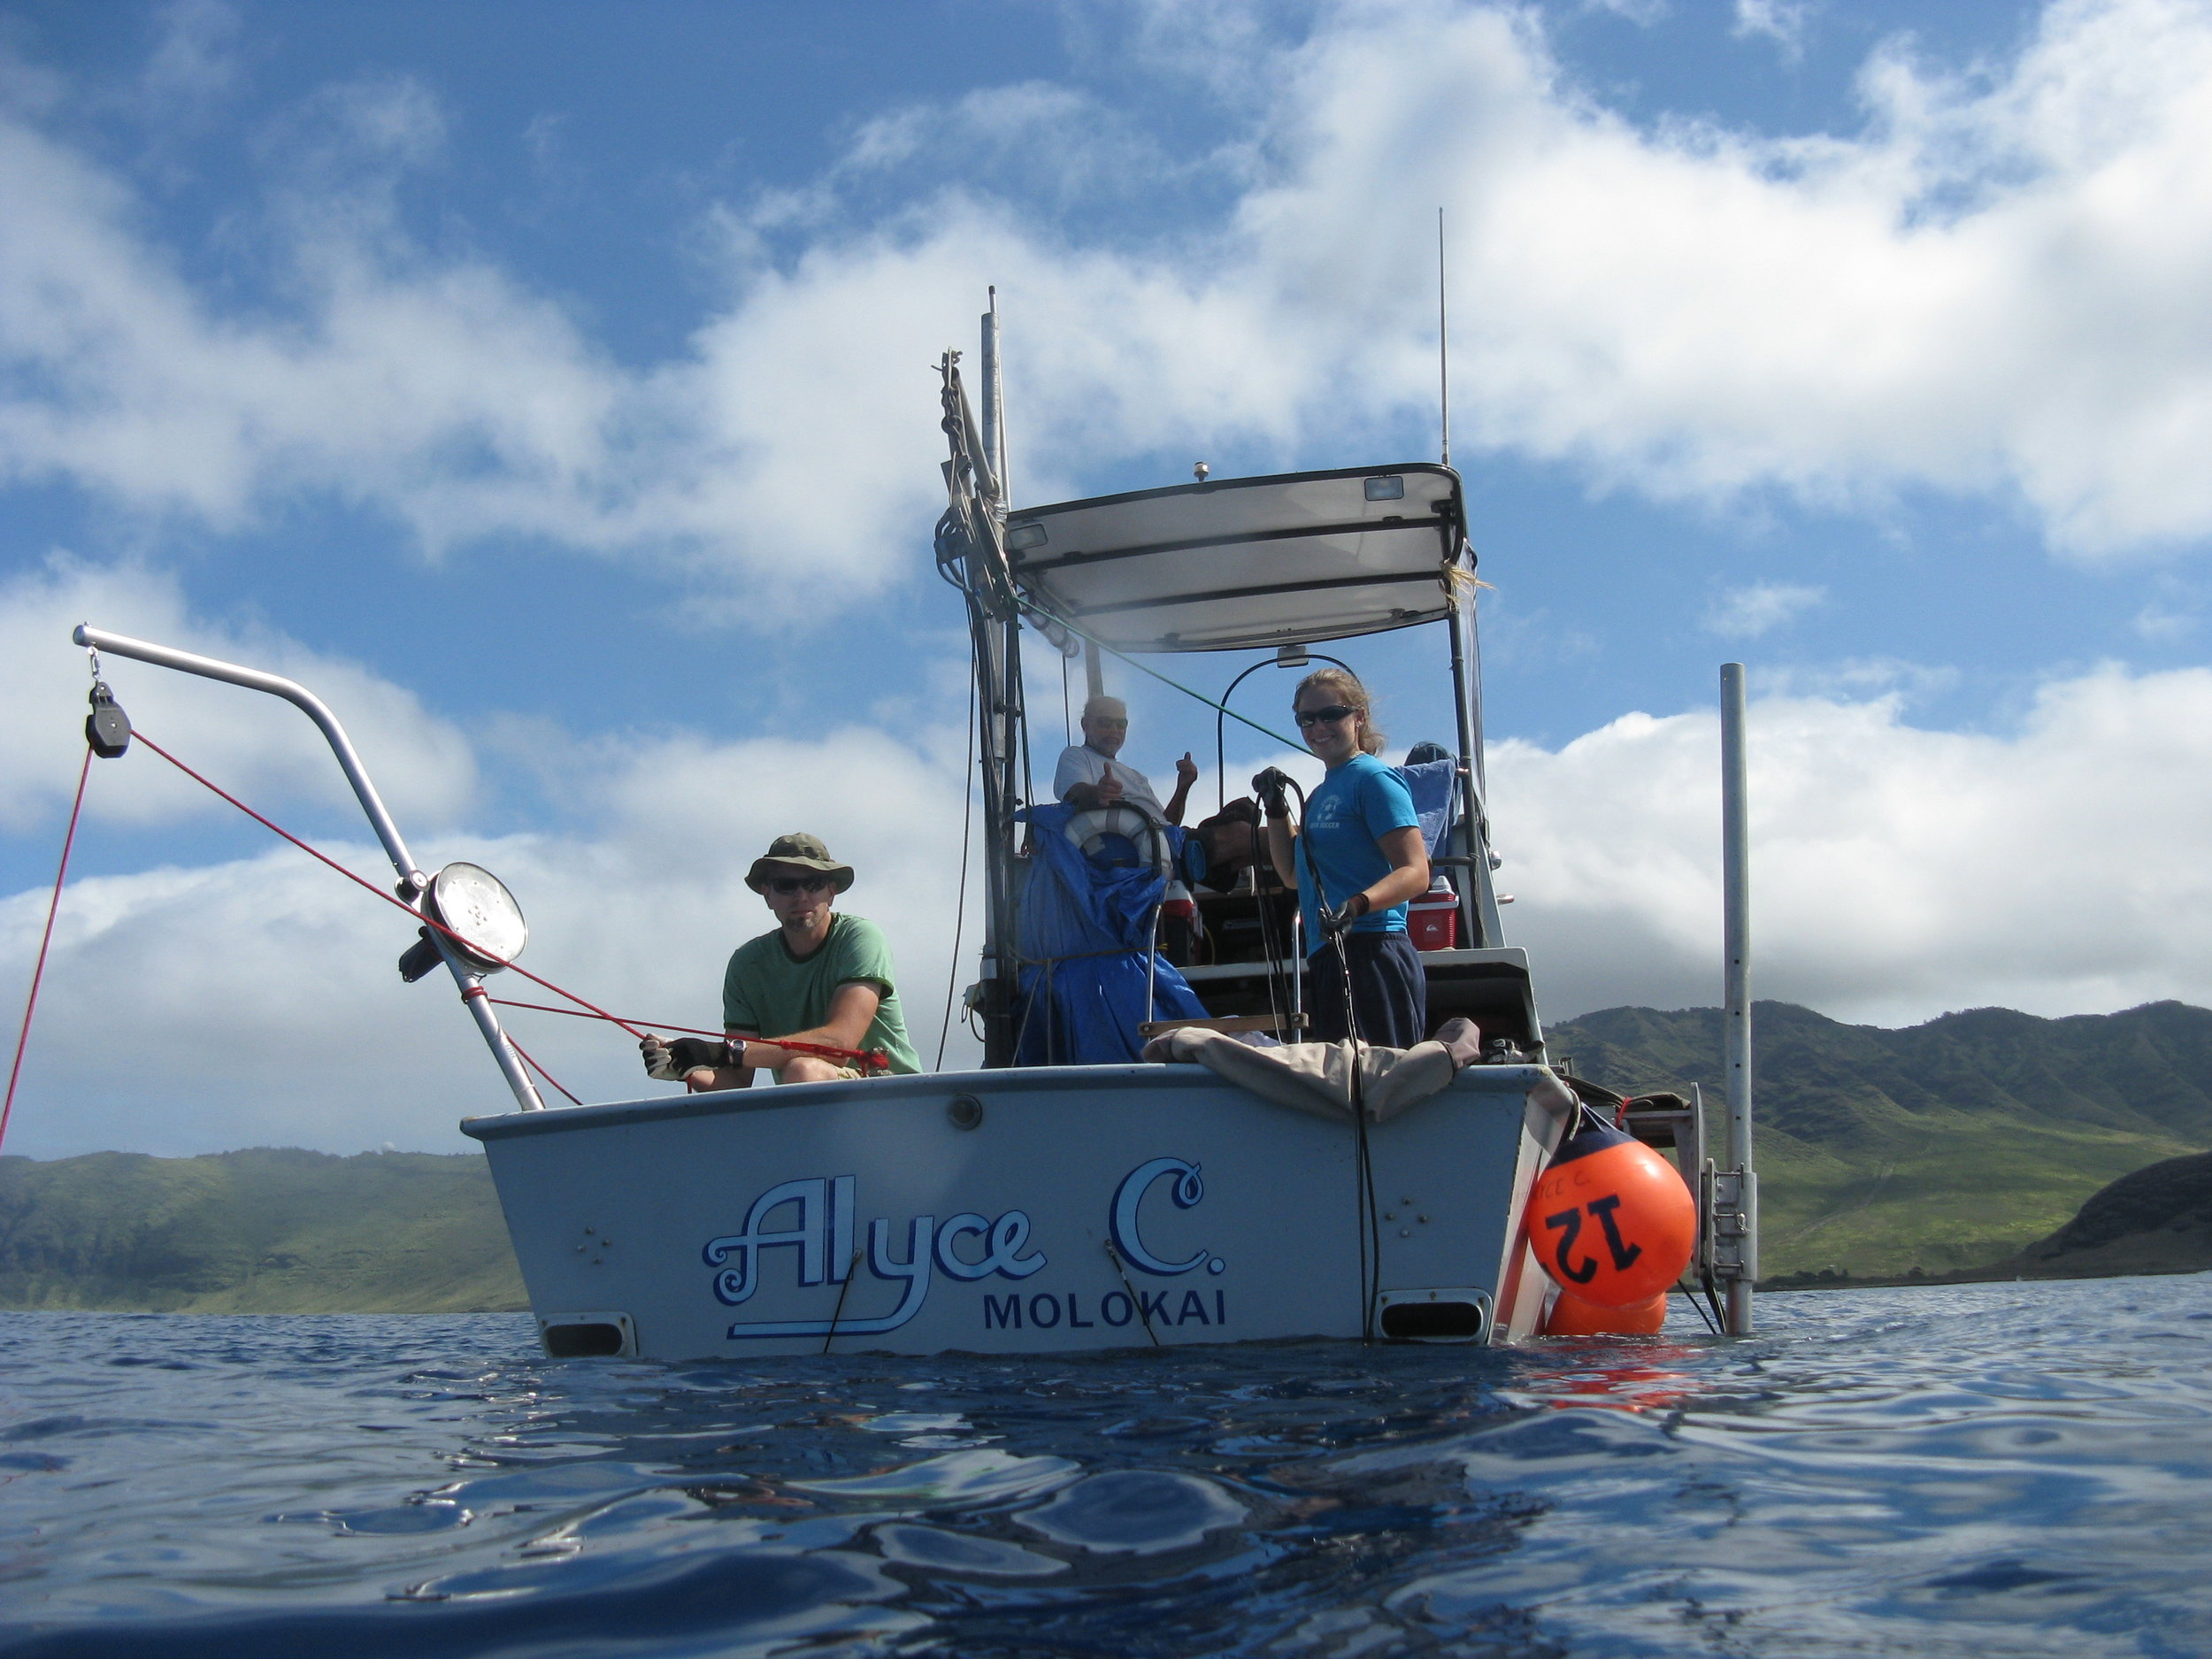 Coastal research on the Alyce C